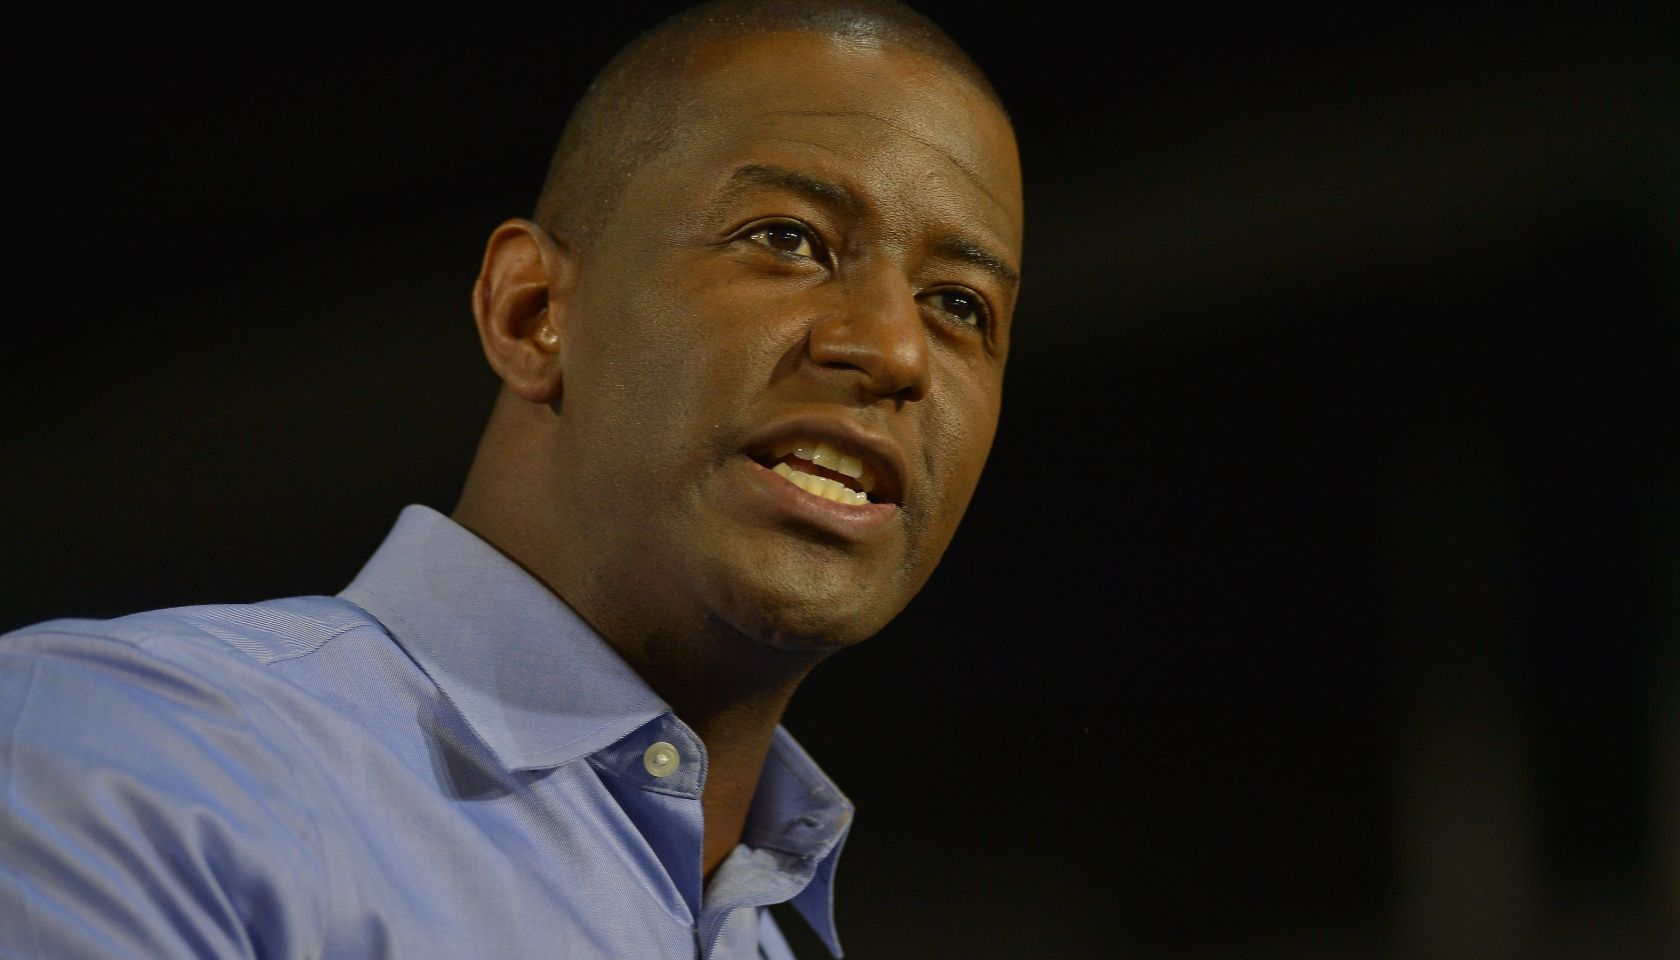 Andrew Gillum joins Stacey Abrams amid early Vice President running mate speculation